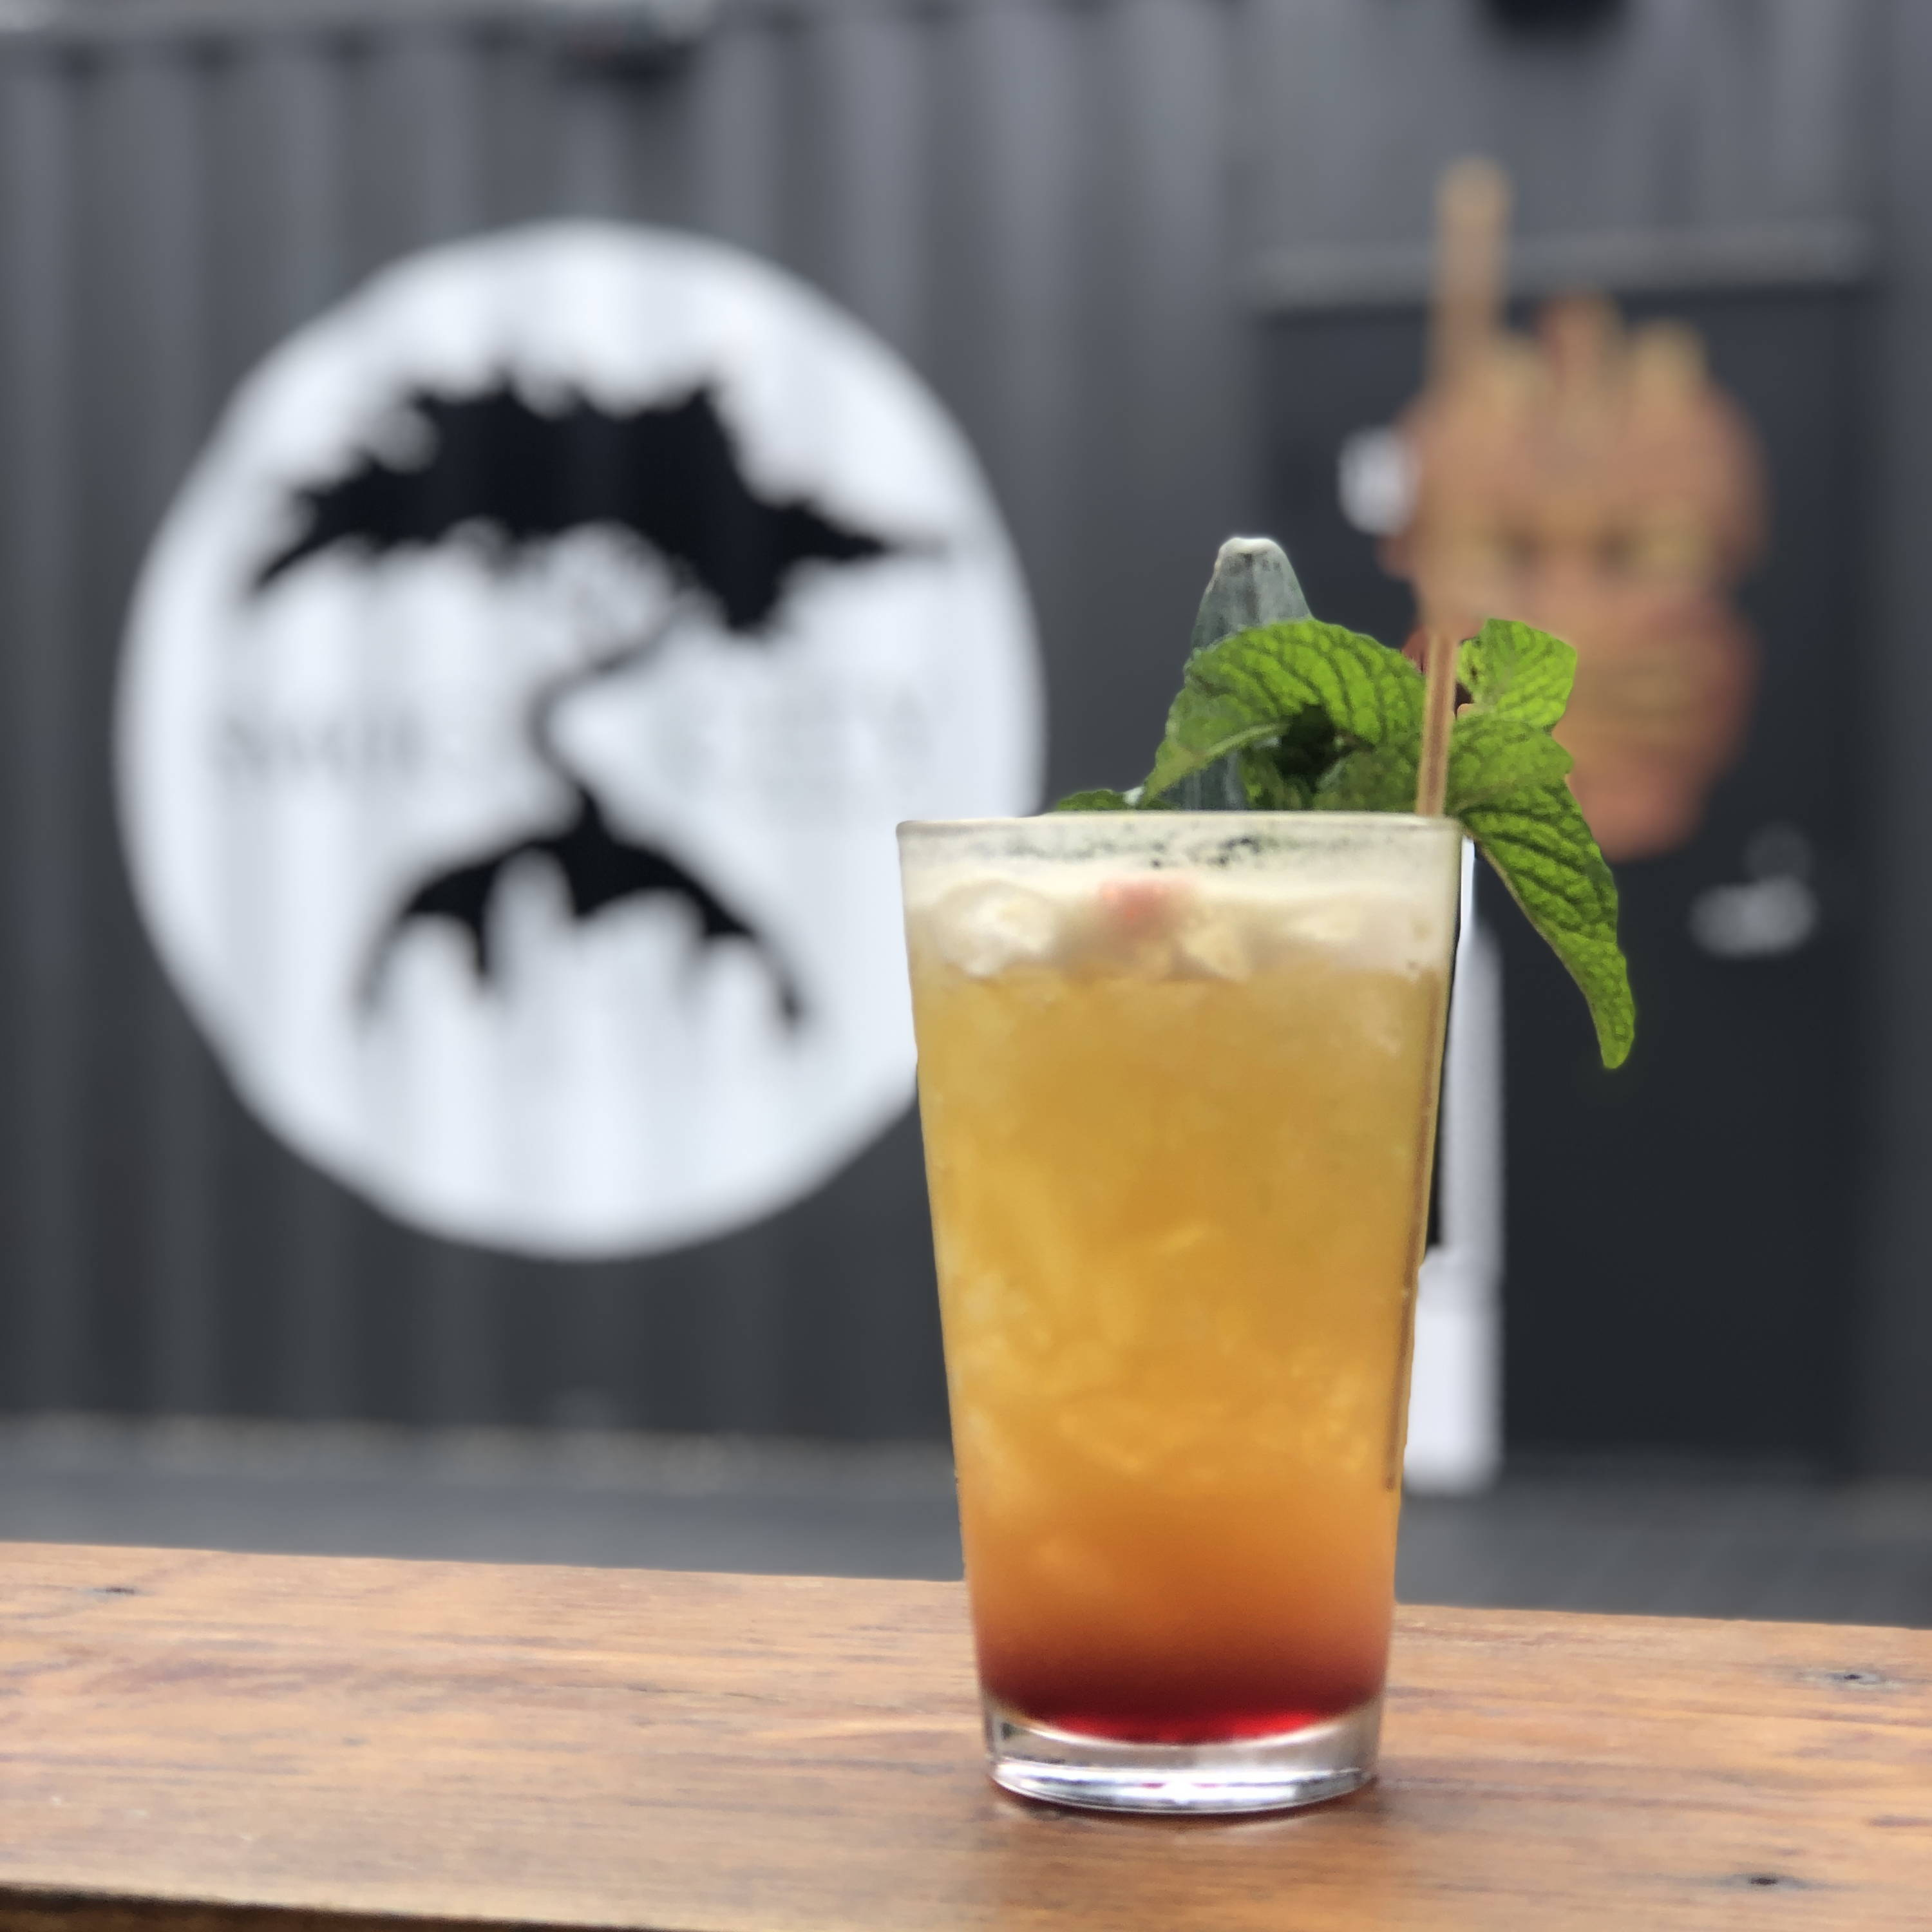 the MSog city logo can be seen in the background behind a tropical and refreshing looking cocktail.